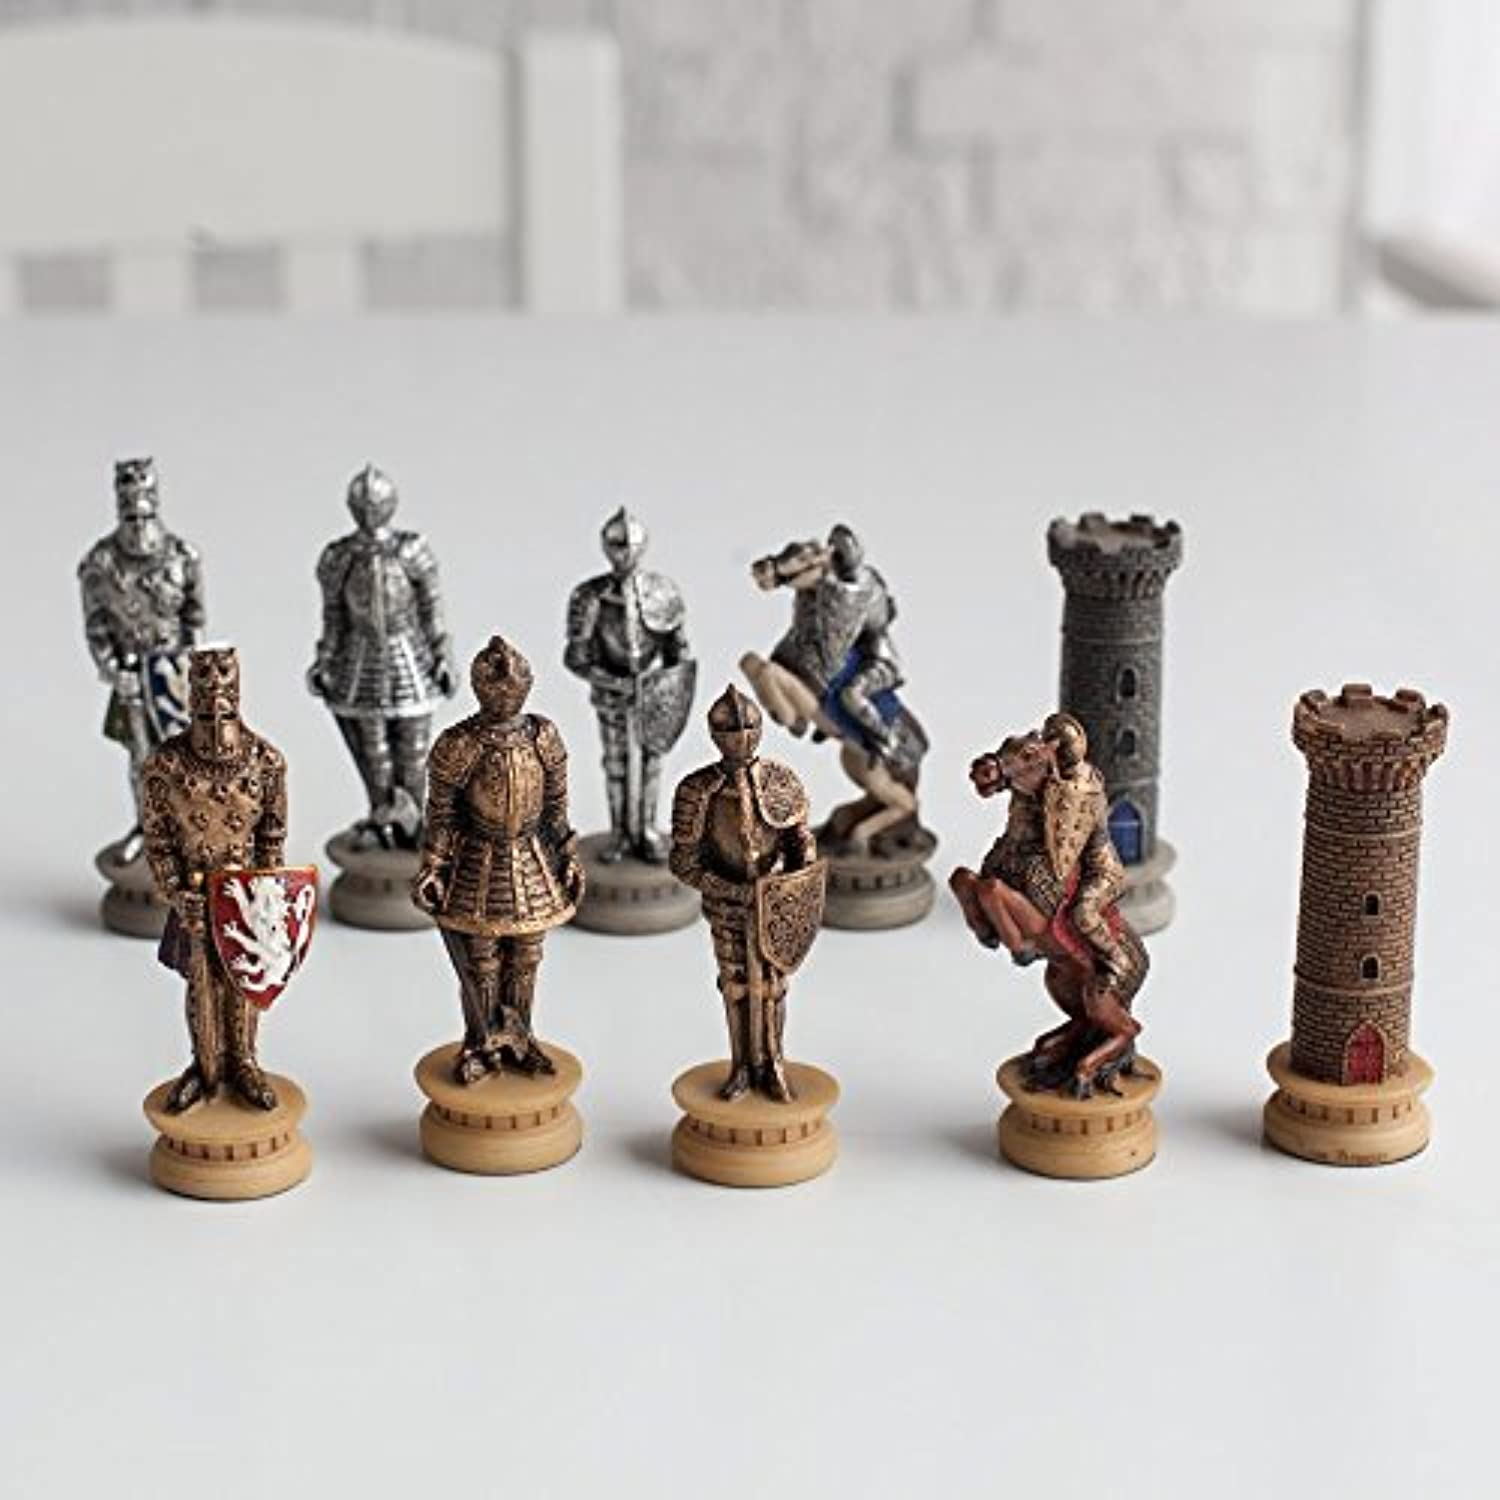 Medieval Times Armored Knights Painted Resin Chess Pieces by World Wise